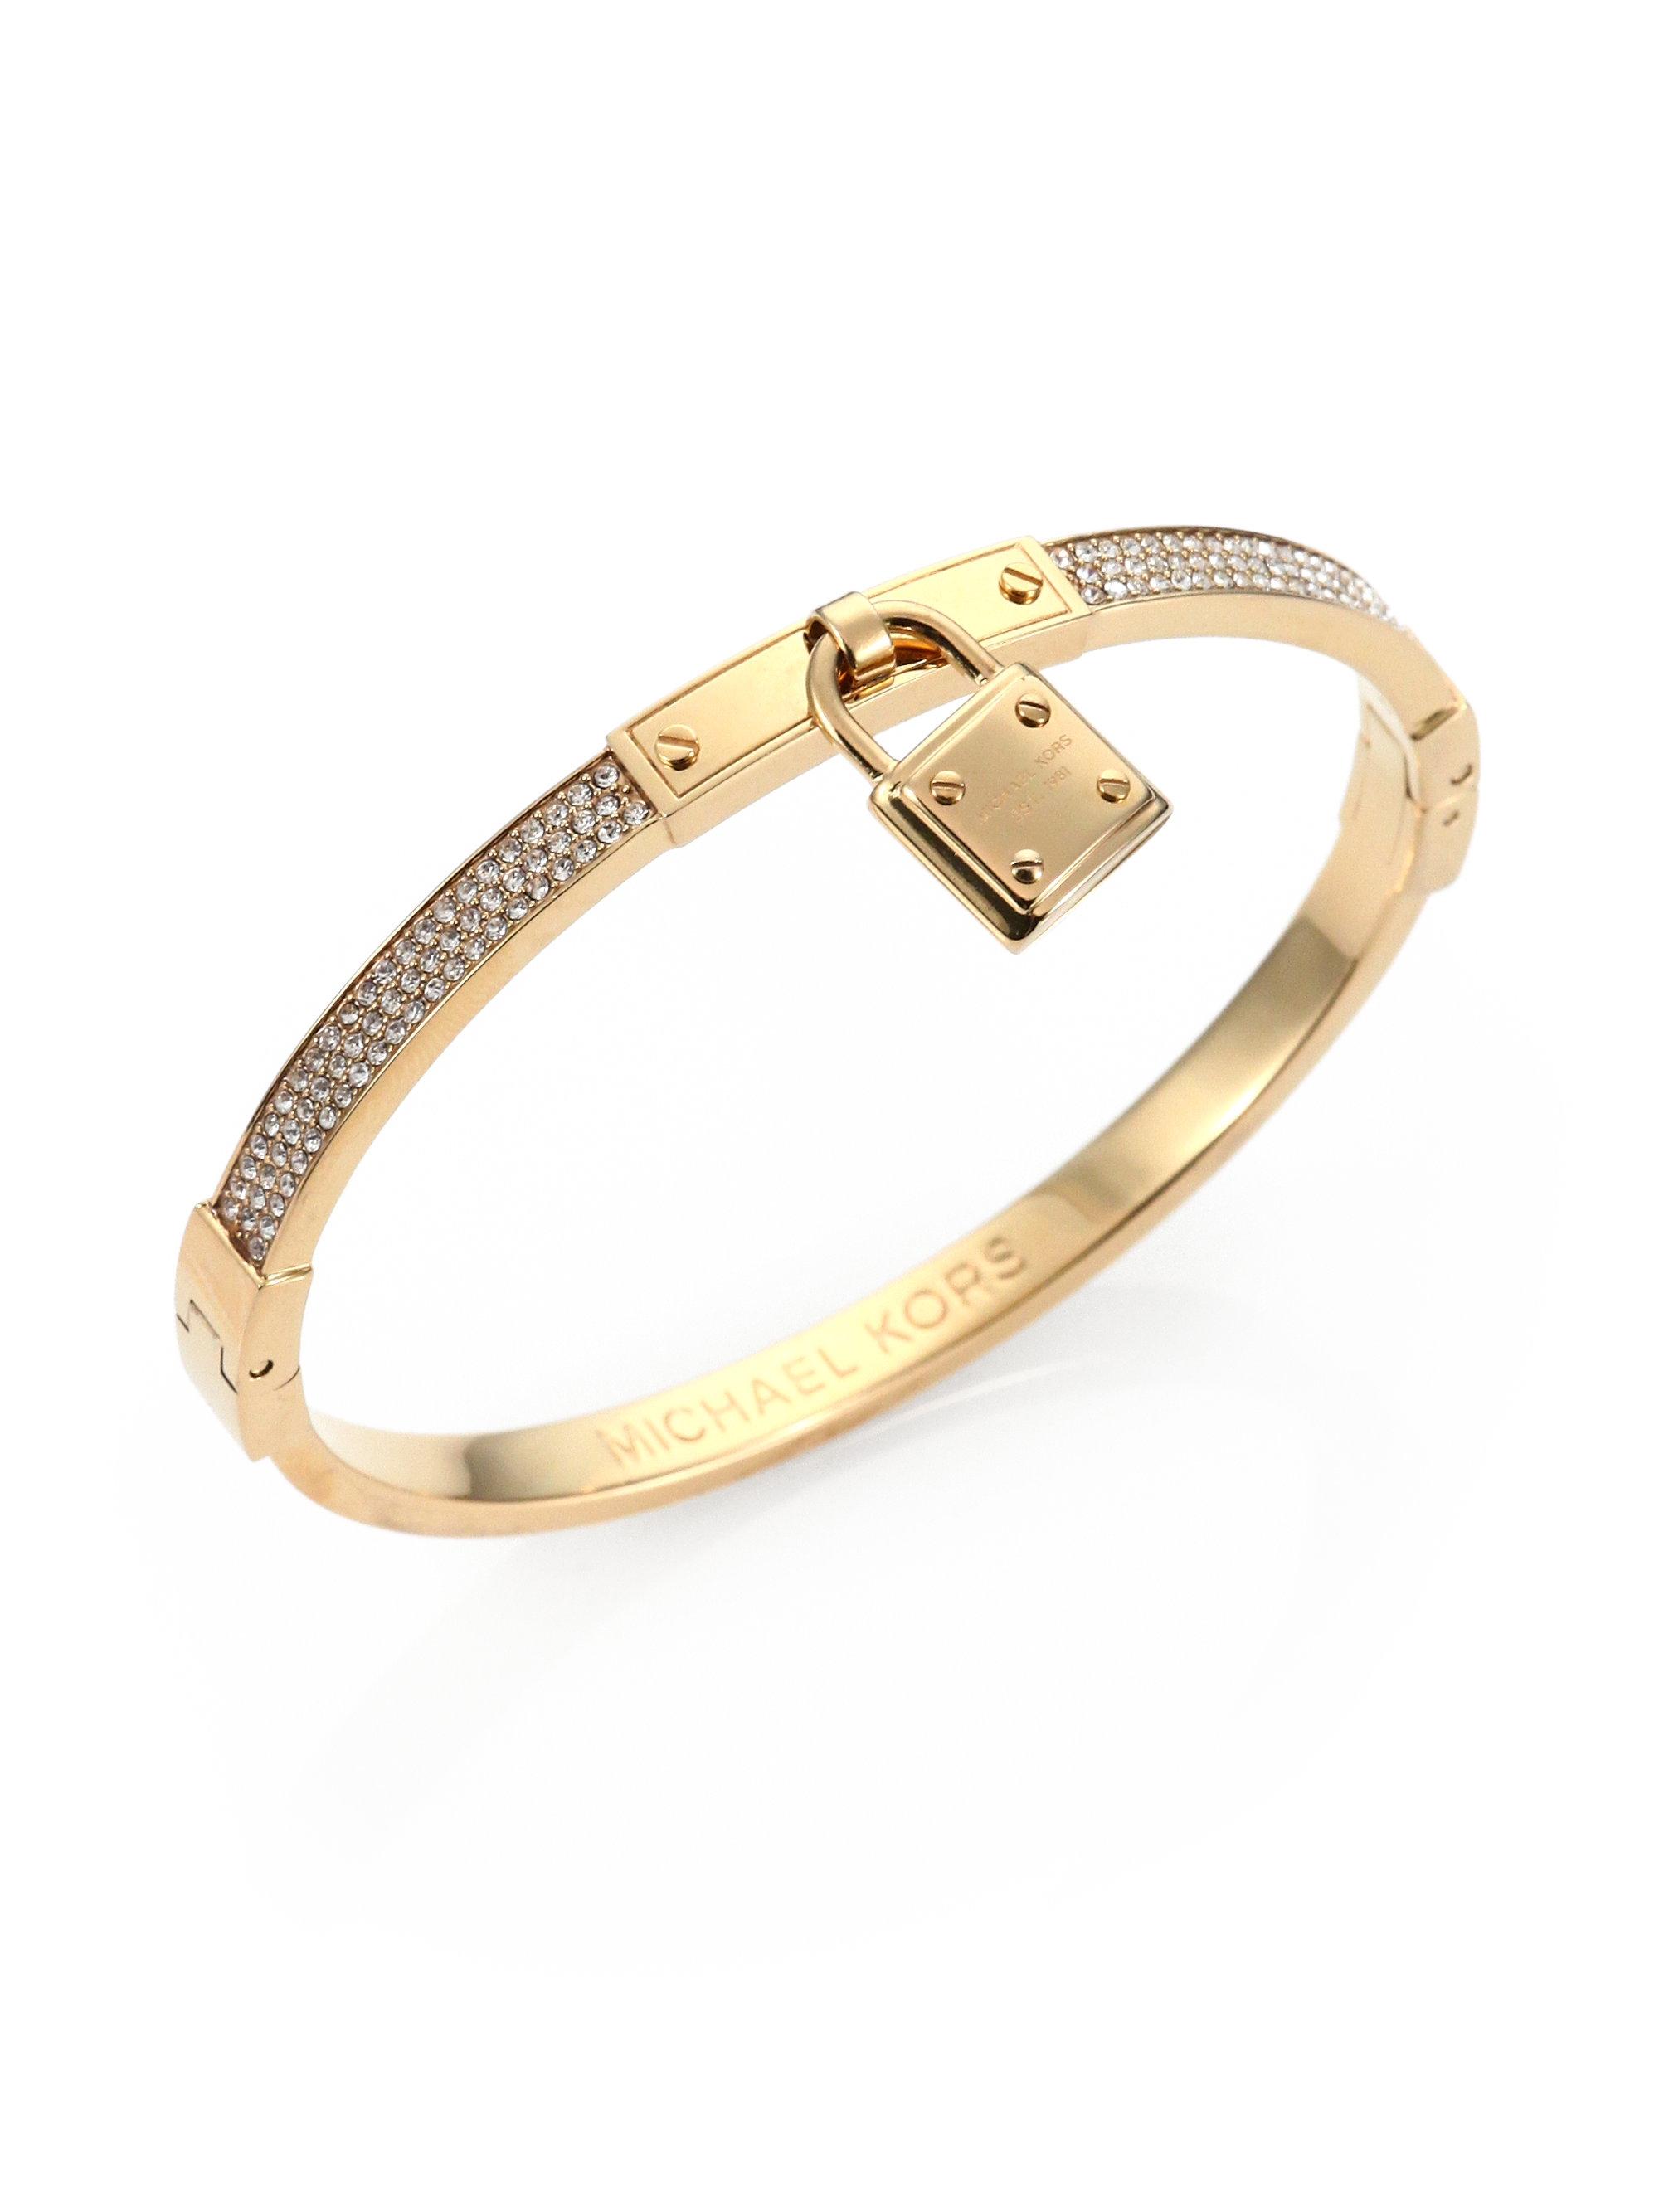 Gallery Previously Sold At Saks Fifth Avenue Women S Michael Kors Bangle